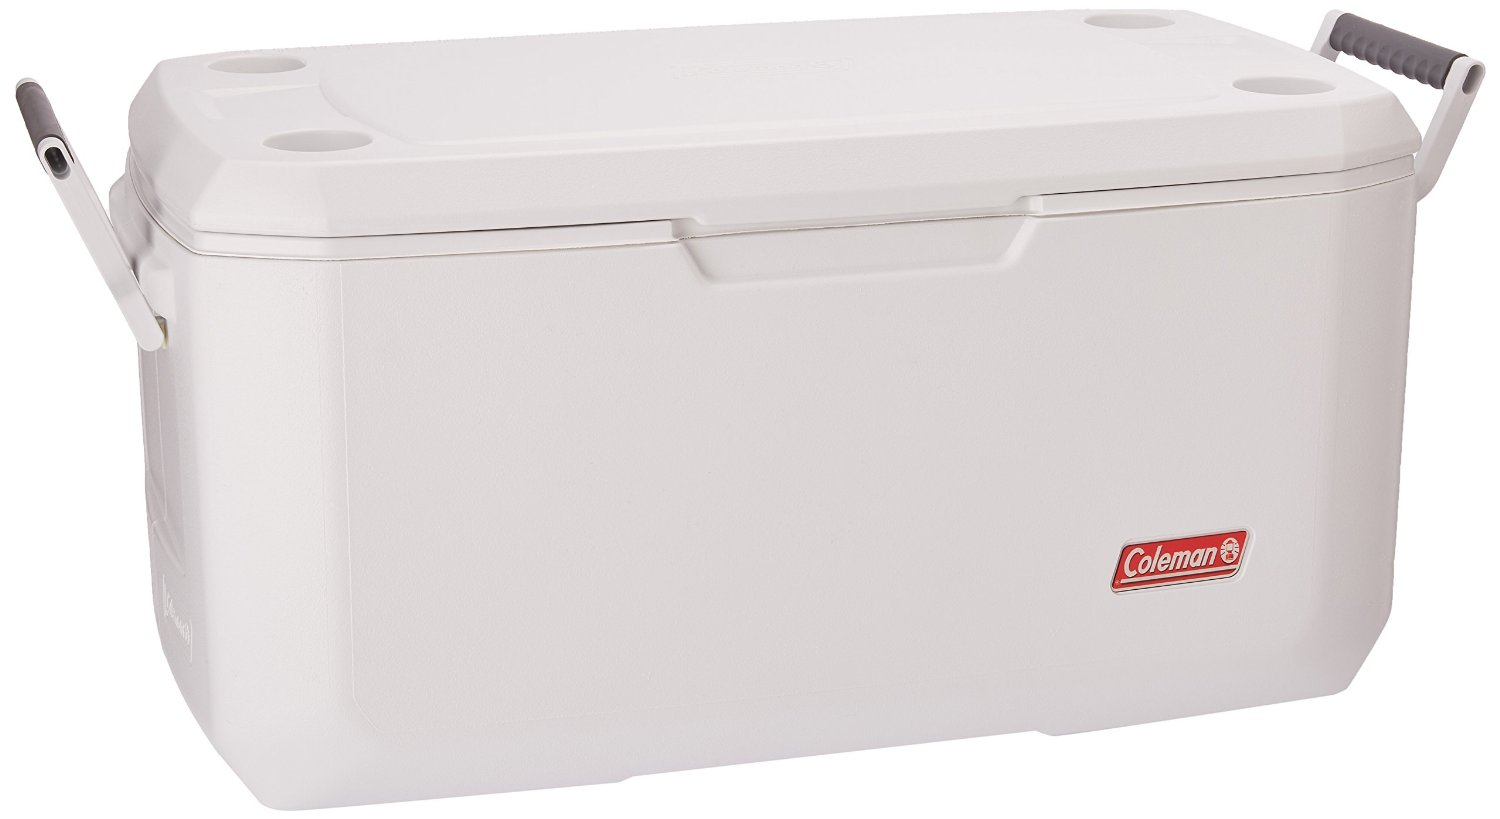 Coleman Xtreme 5 Cooler : Coleman coolers reviews recommendations